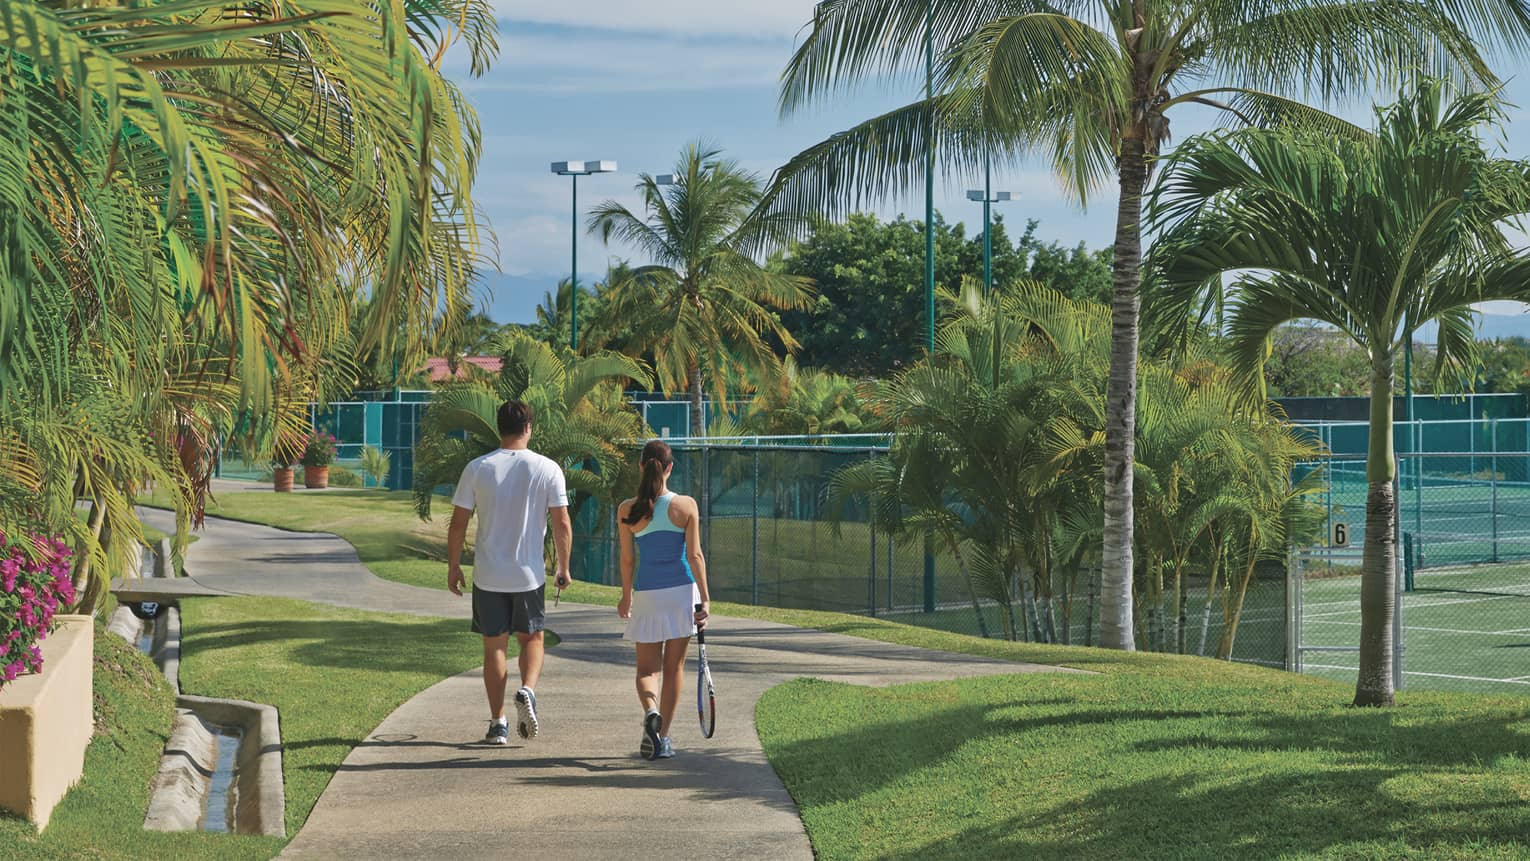 Man and woman holding tennis racket walk down path toward tennis courts, past palm trees